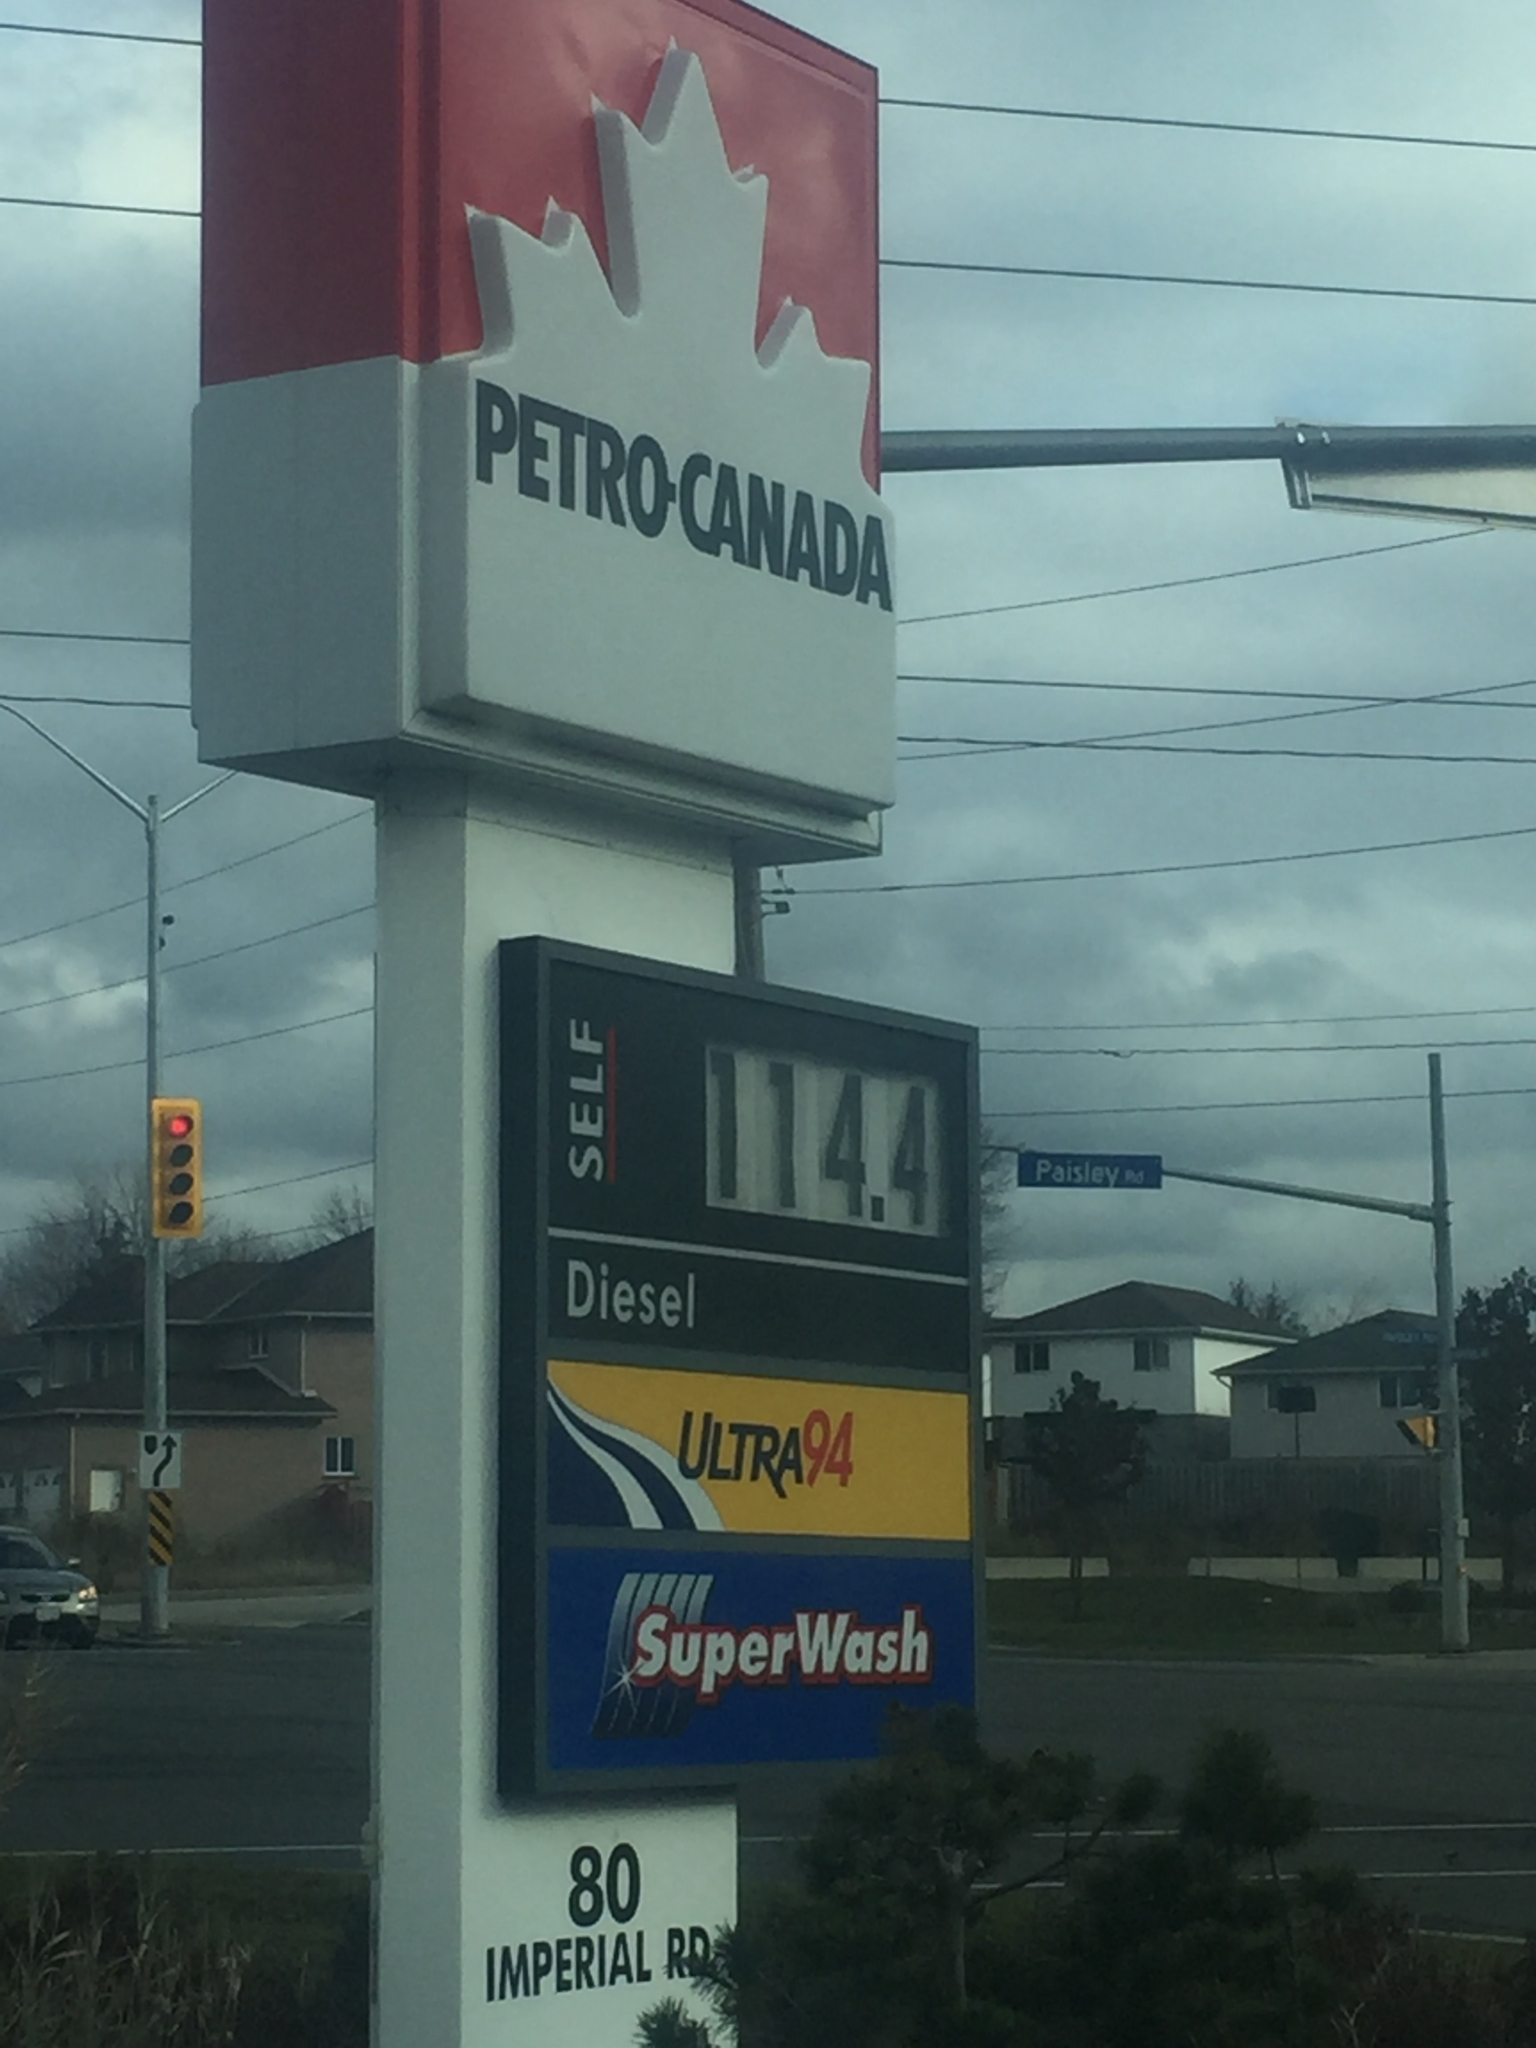 Petro-Canada - 80 Imperial Rd S, Guelph, ON